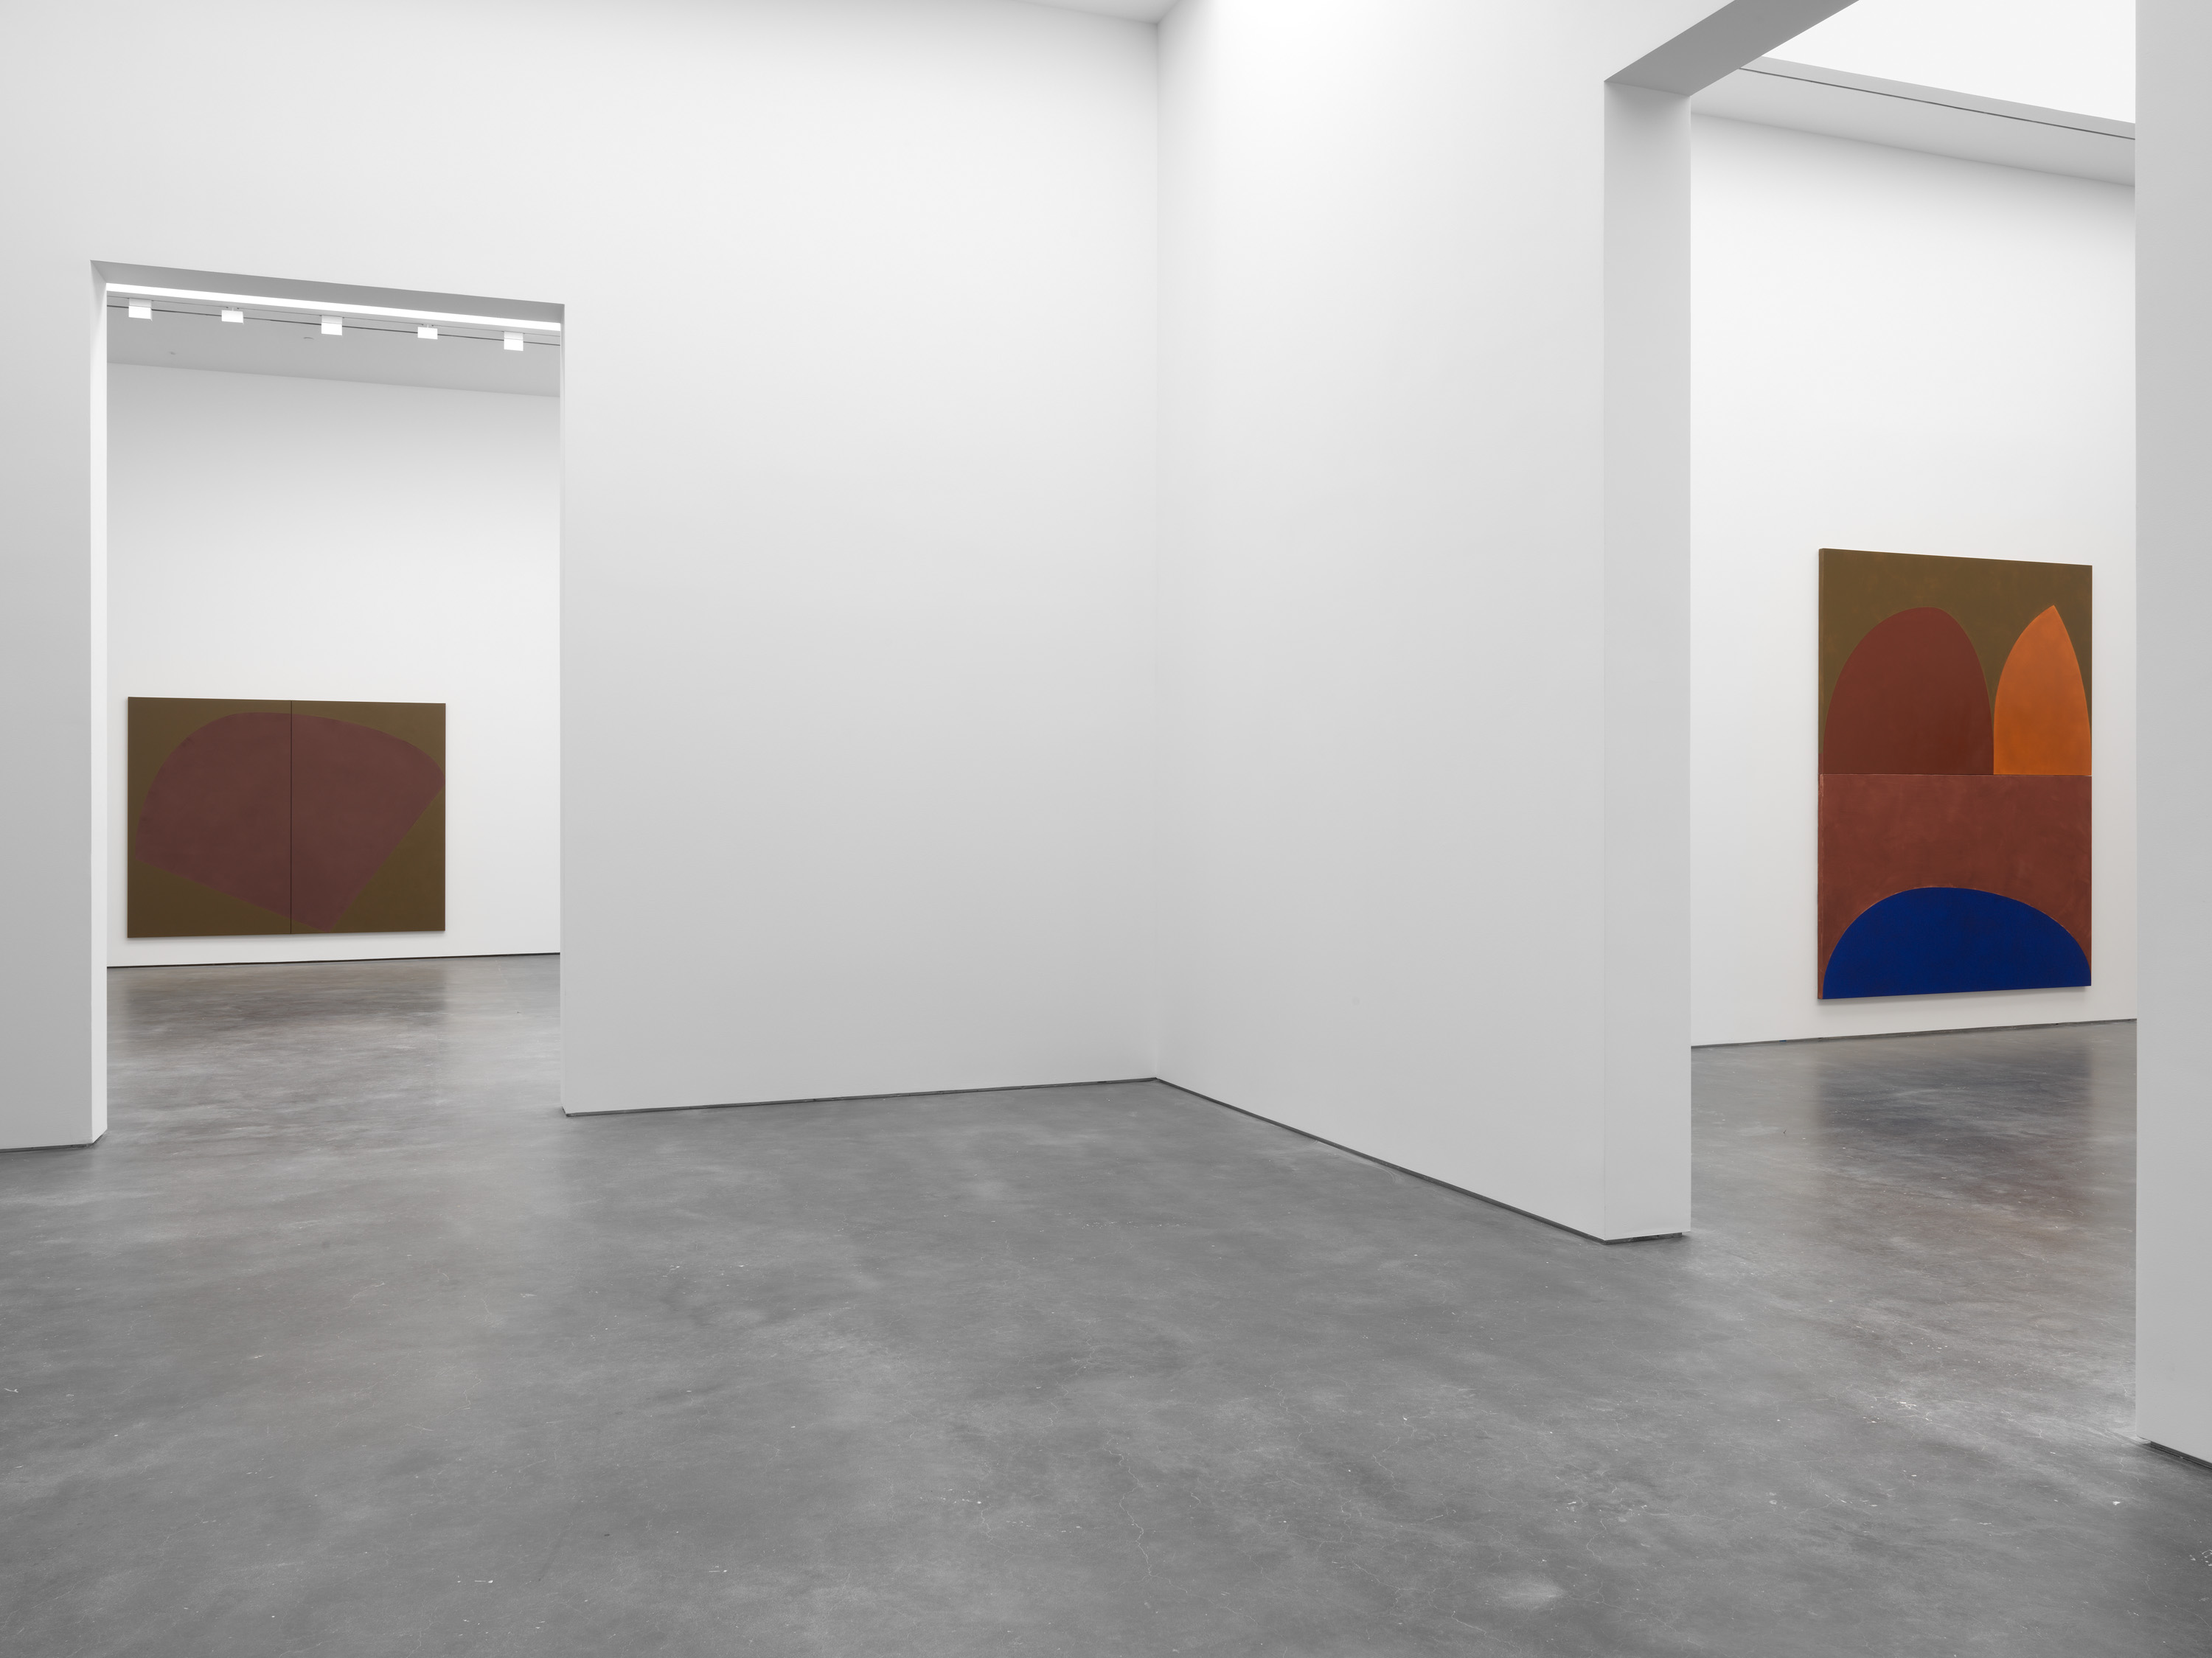 Installation view 7, Suzan Frecon: oil paintings, David Zwirner, New York, 2020 Courtesy David Zwirner